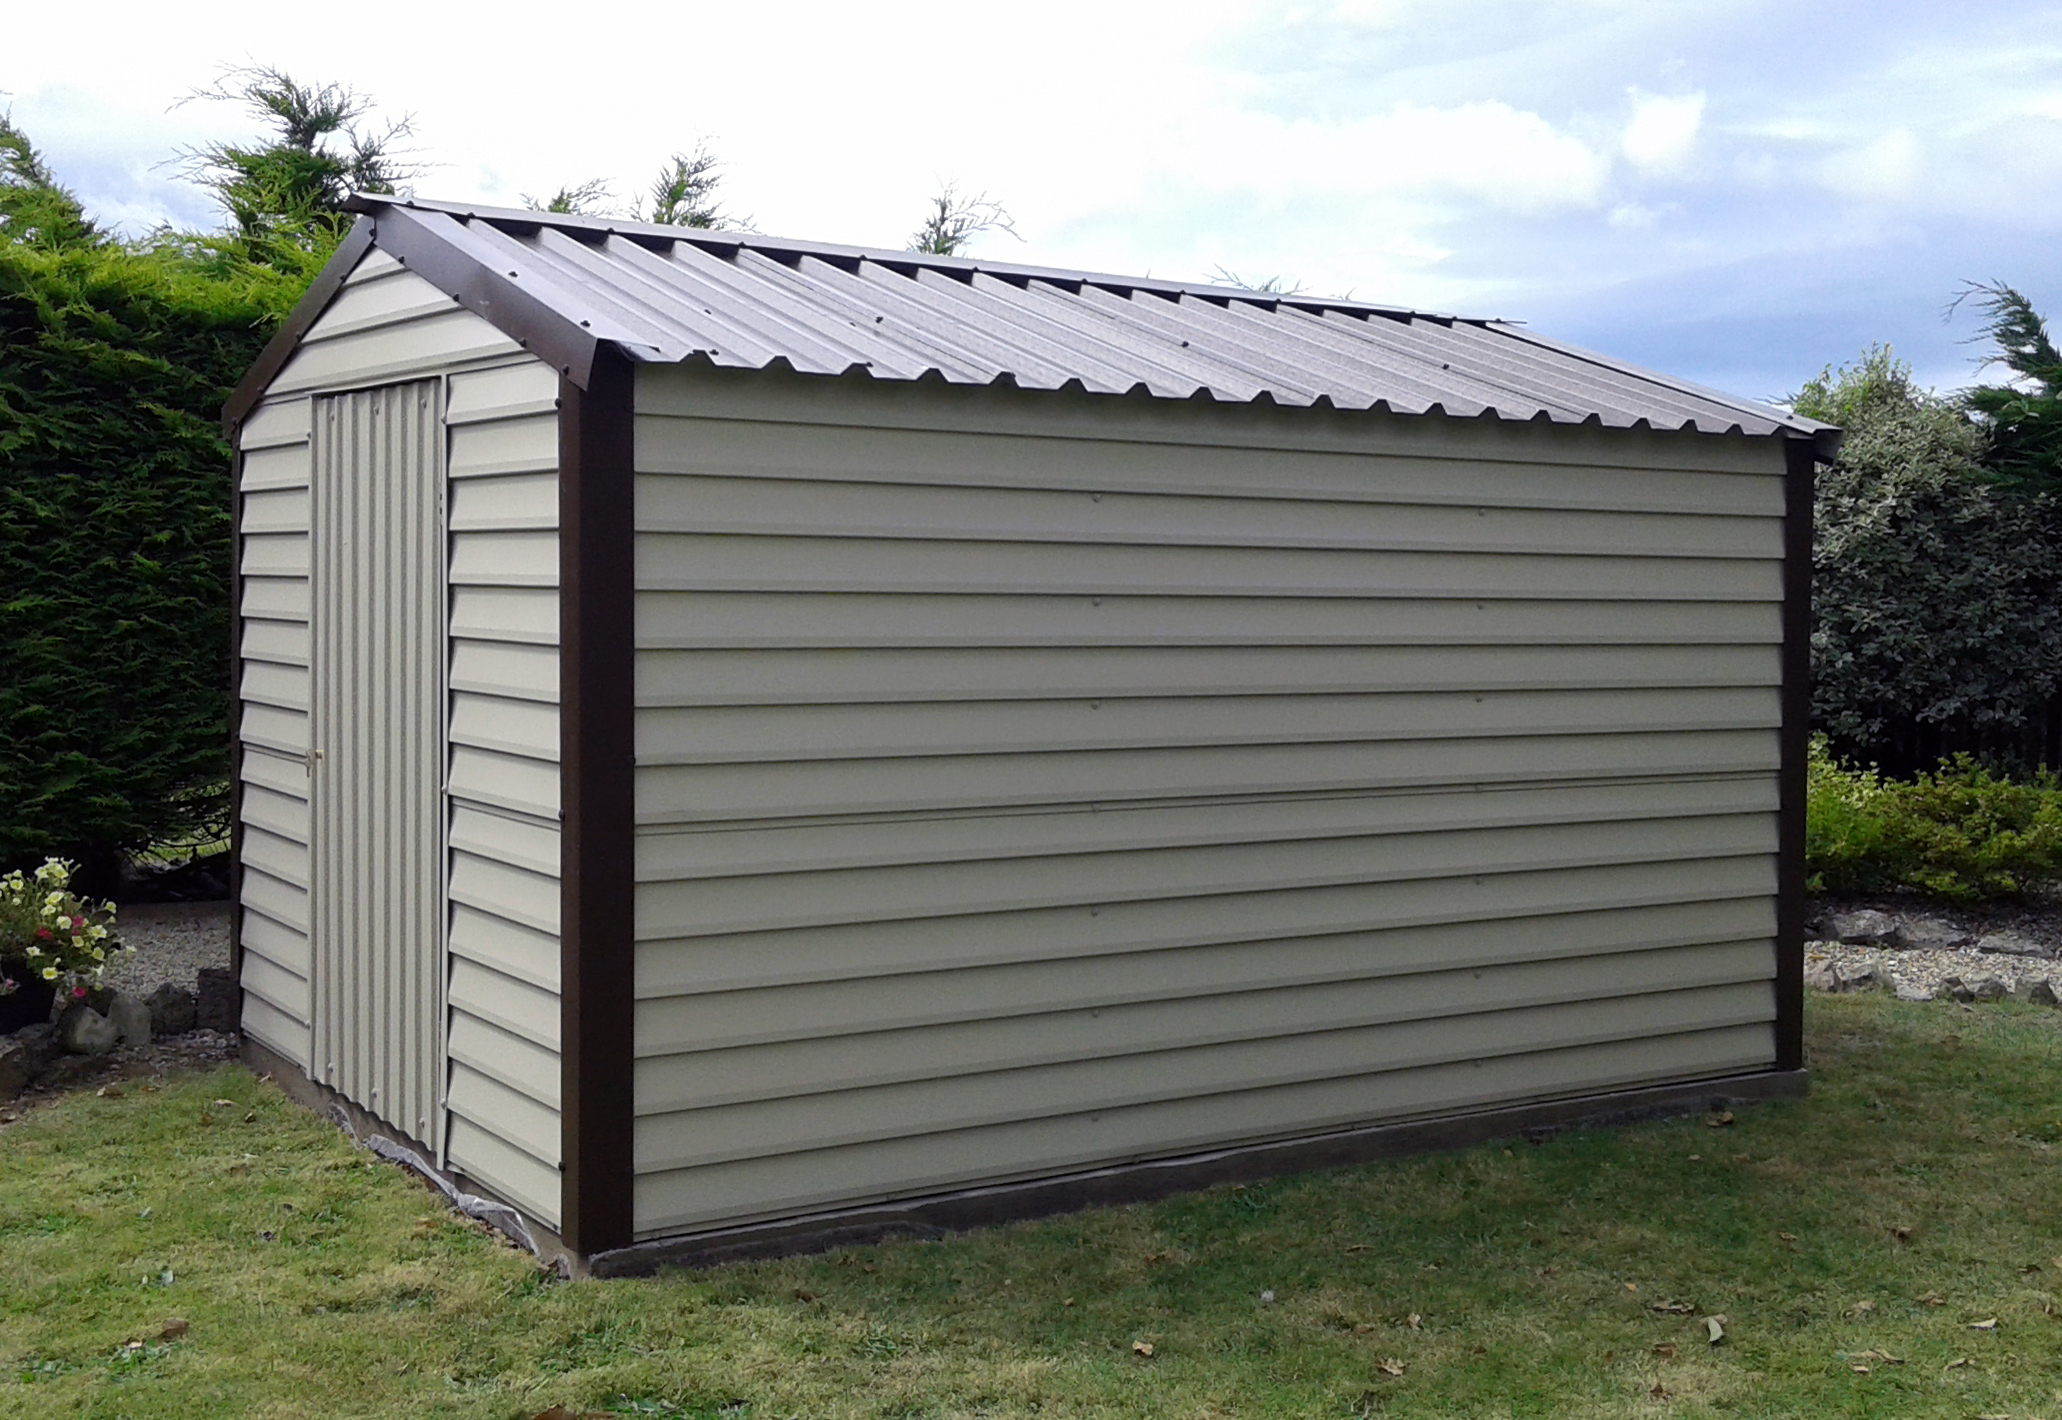 steel the whites sheds garages organization shed metal arrow n outdoor depot home storage b